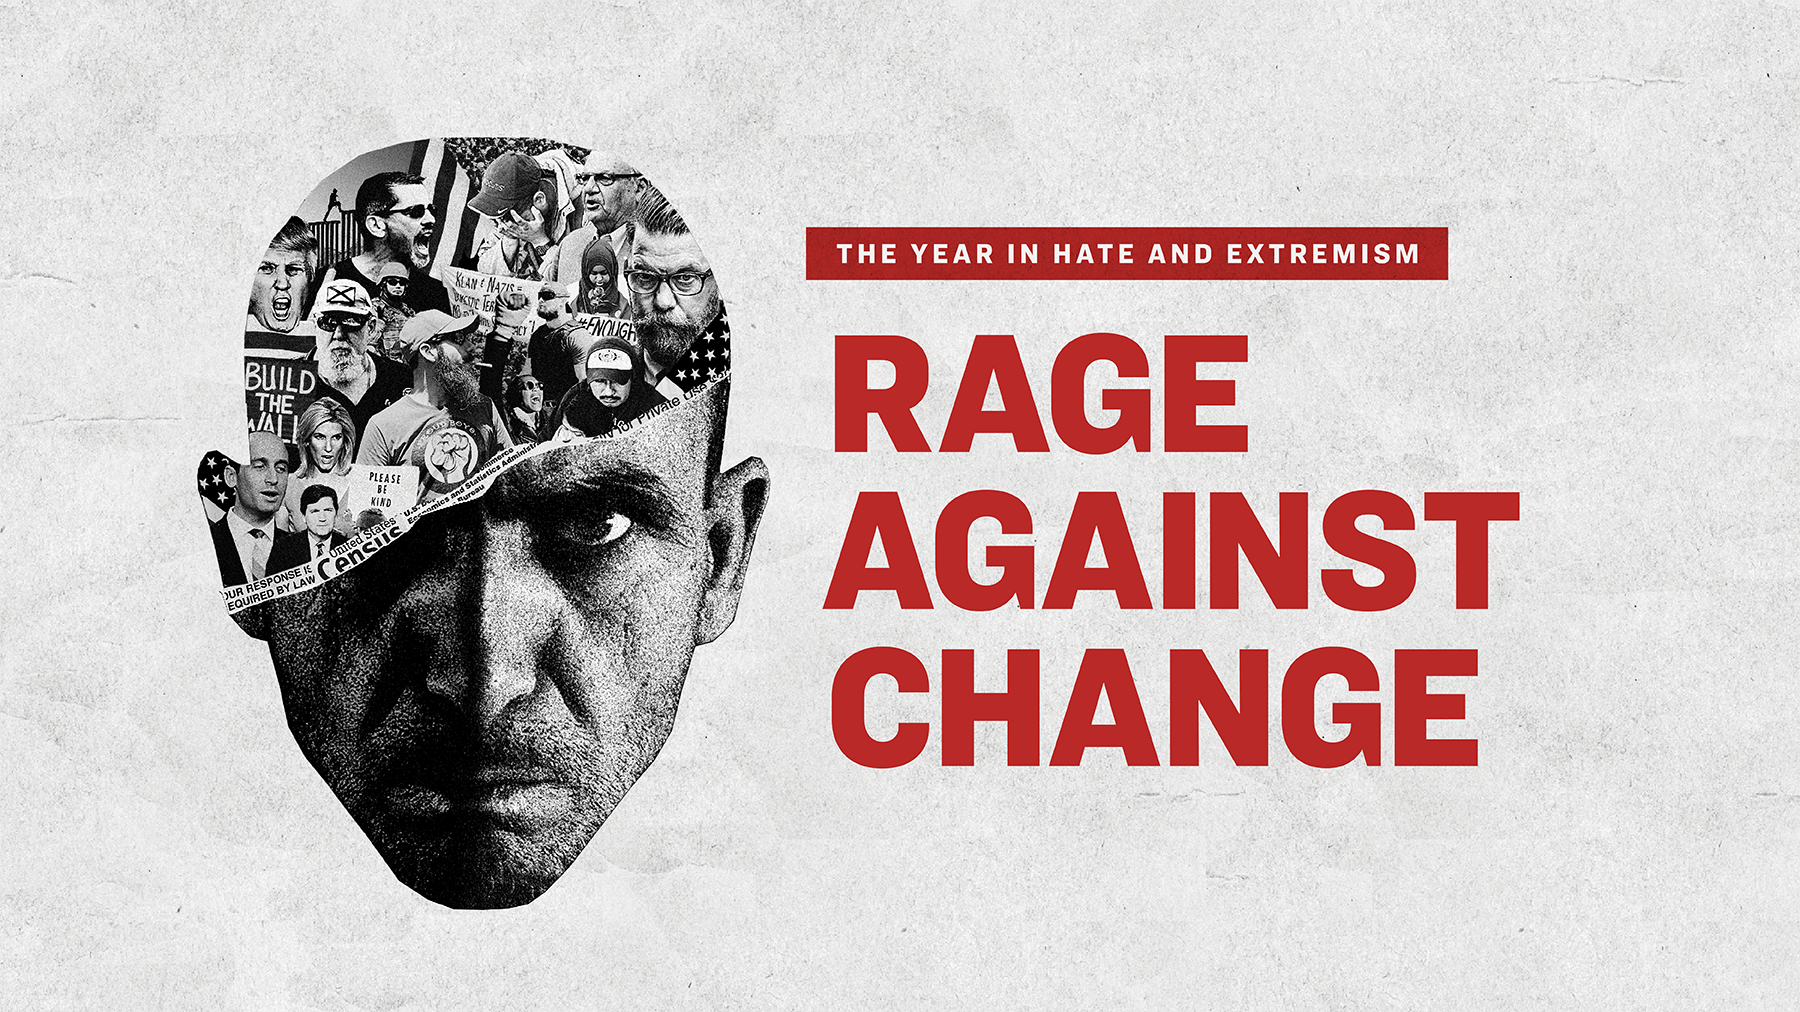 The Year in Hate: Rage Against Change | Southern Poverty Law Center